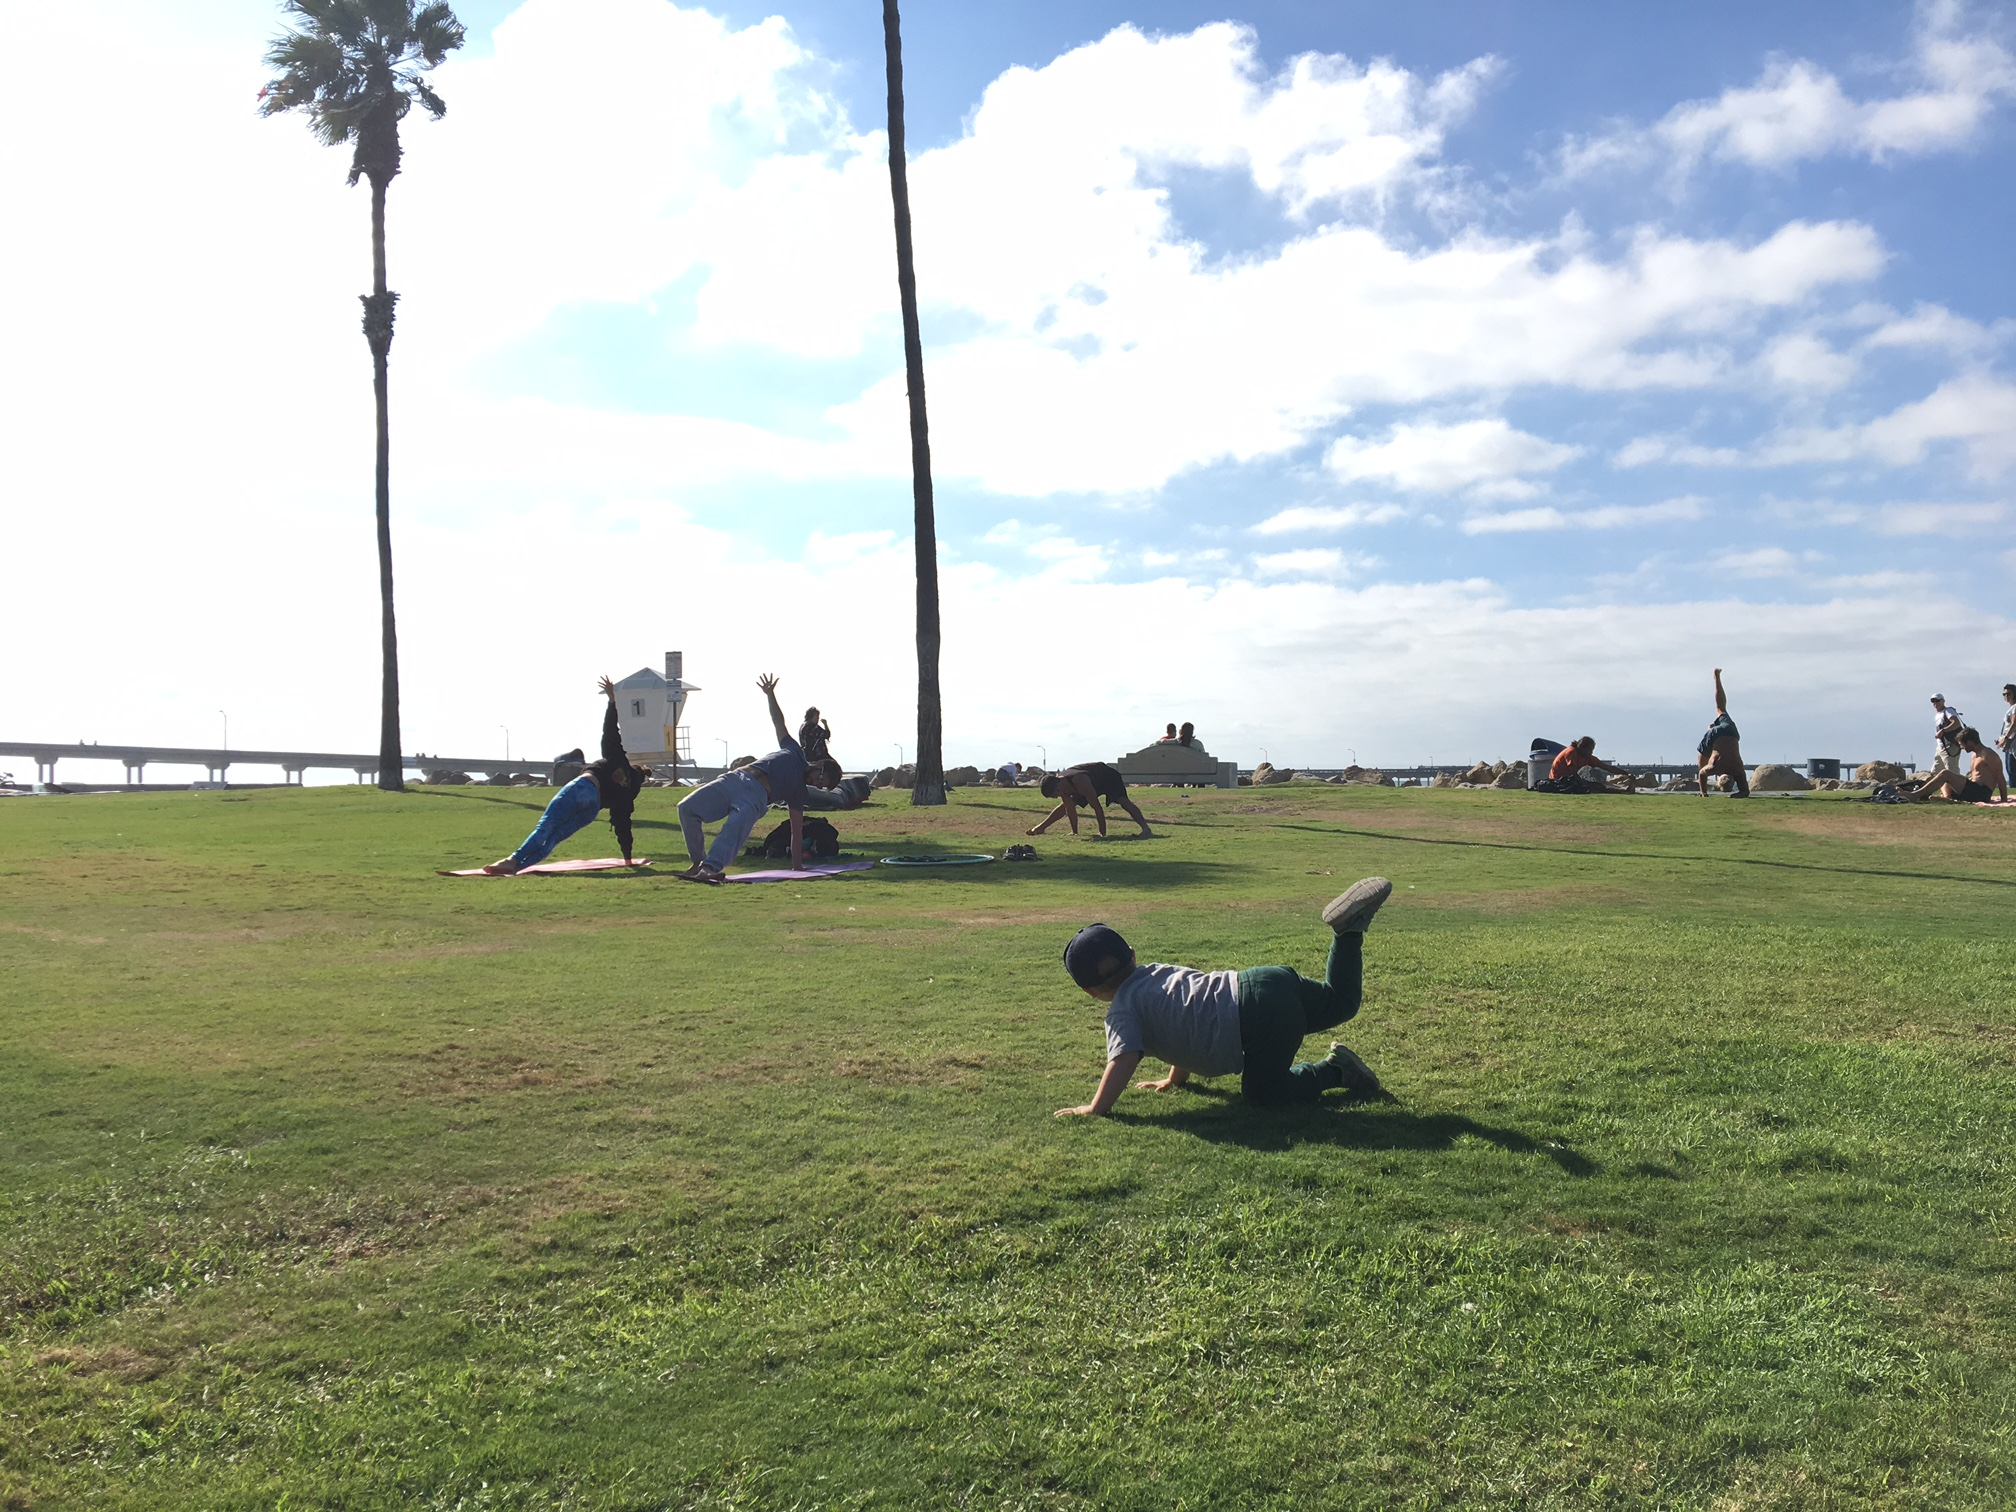 yoga in the park at ocean beach california